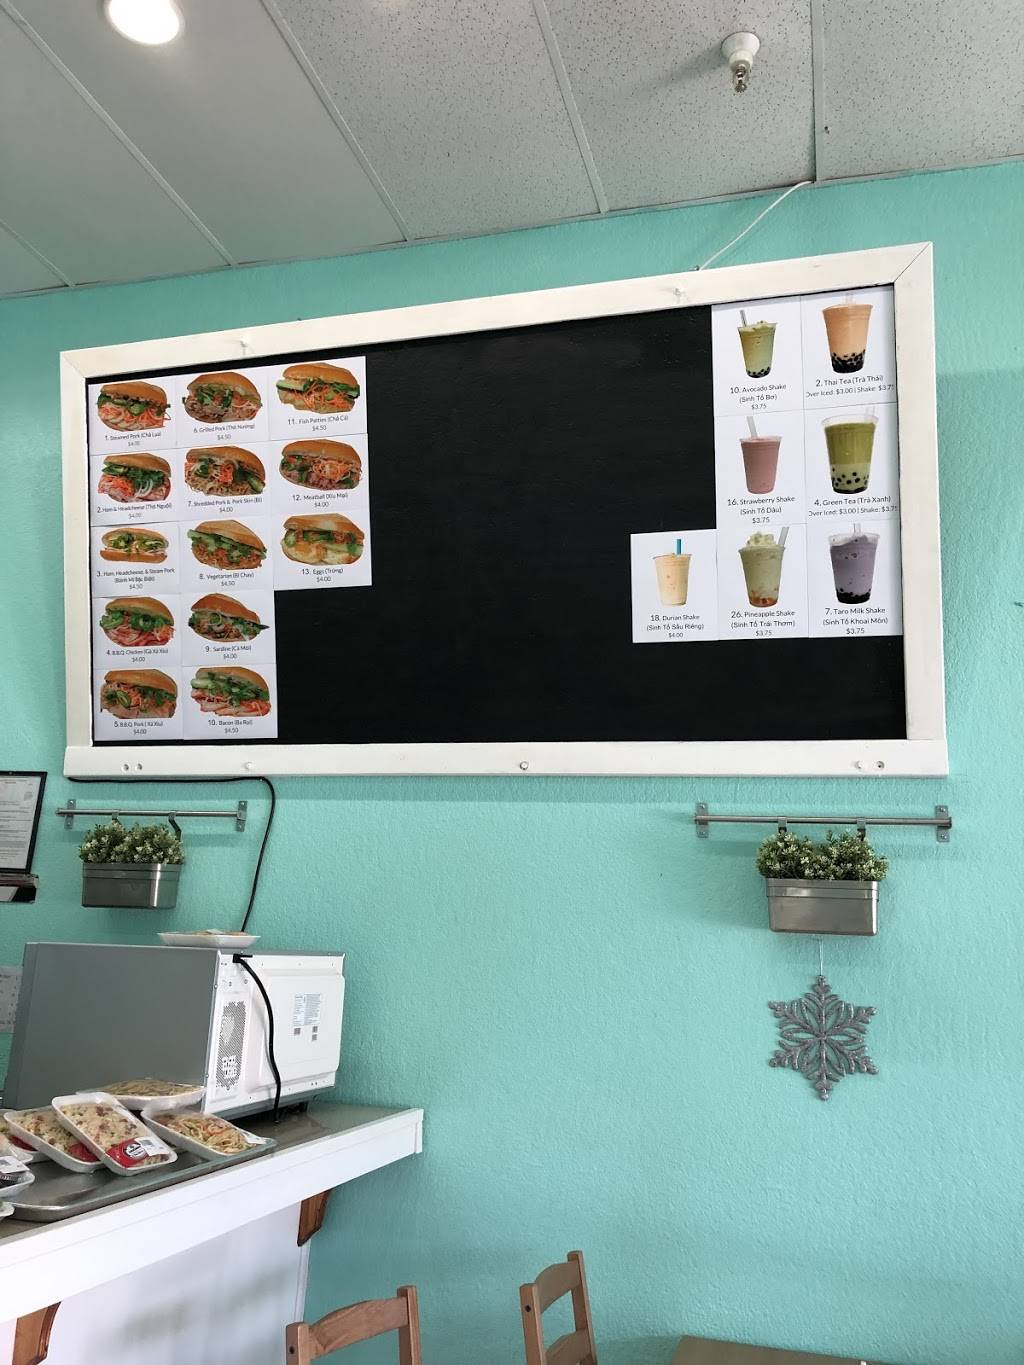 DL Sandwiches - restaurant  | Photo 7 of 10 | Address: 7912 N El Dorado St, Stockton, CA 95210, USA | Phone: (209) 451-4295